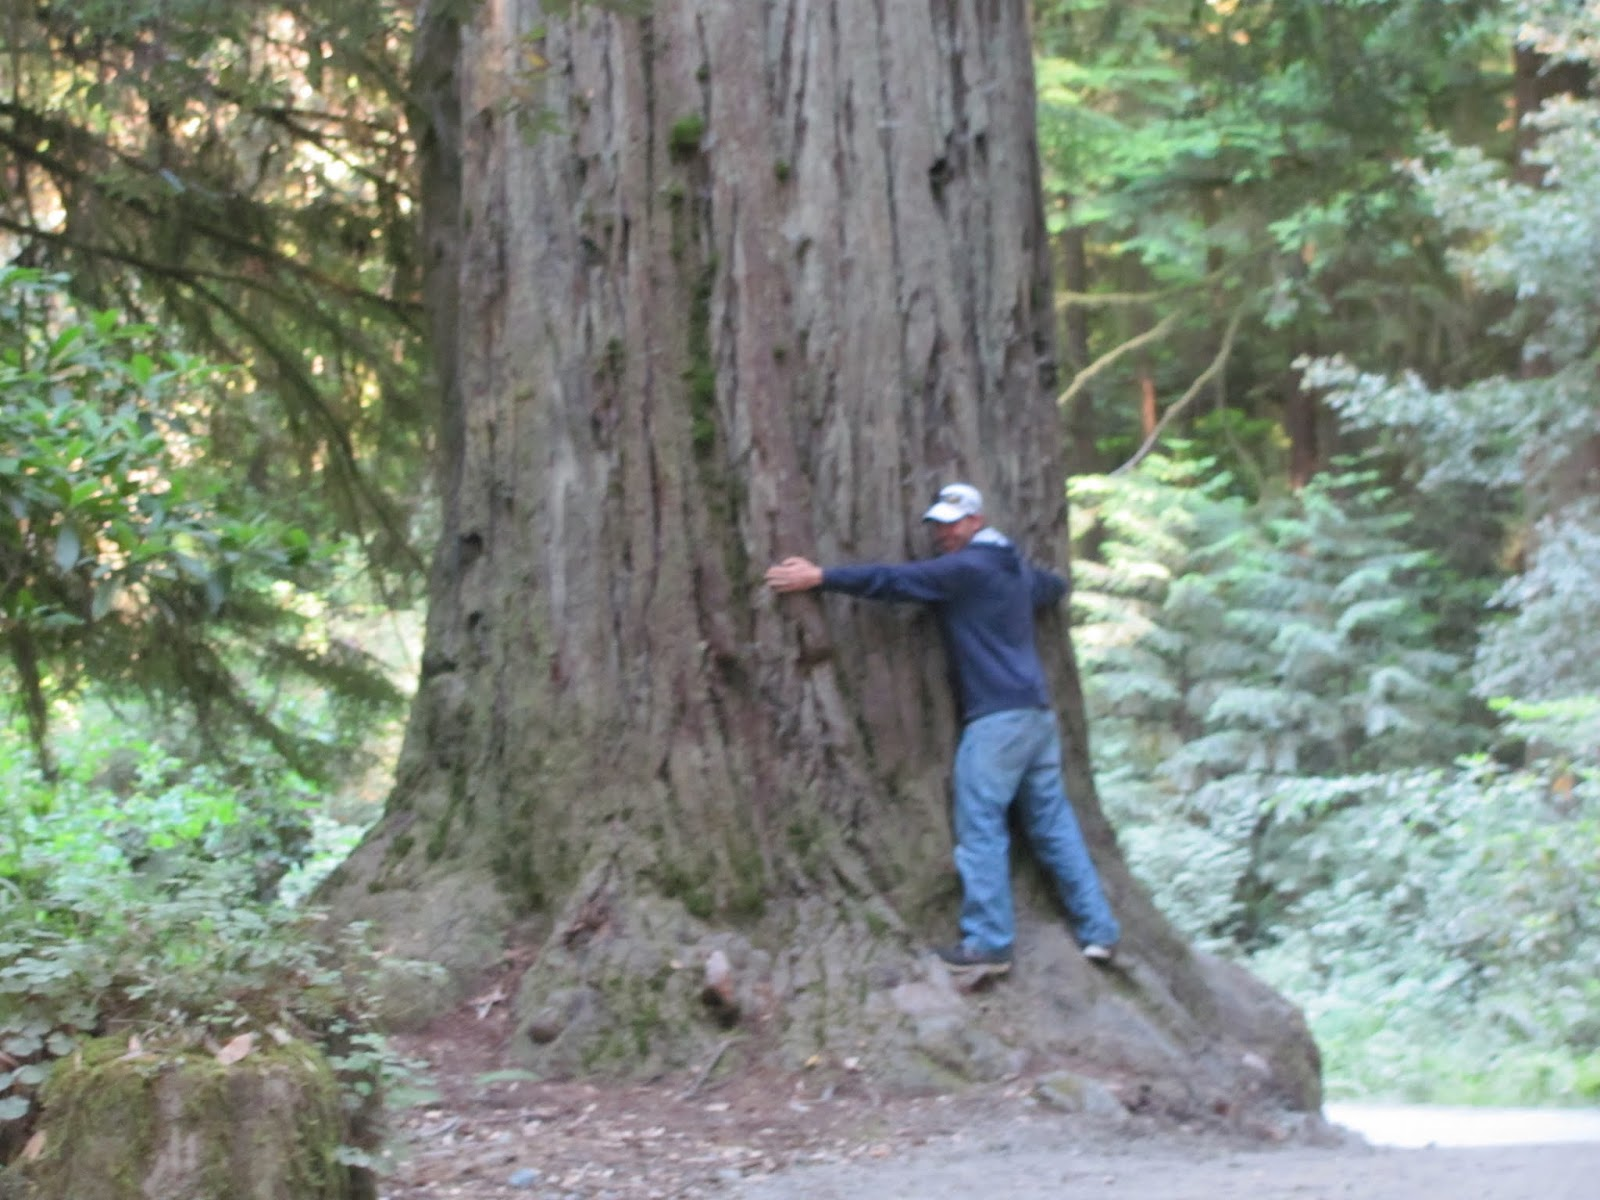 Cory hugs a giant redwood tree at Jedediah Smith State Park, California